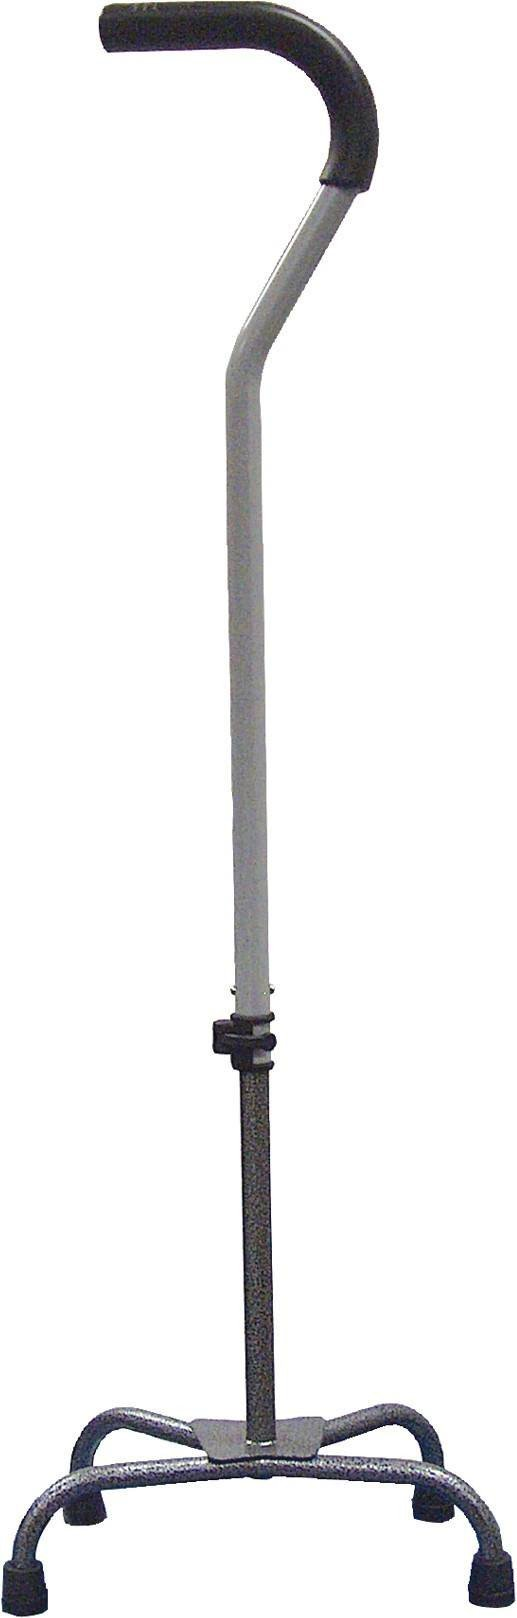 Buy Quad Cane with Large Base online used to treat Canes - Medical Conditions